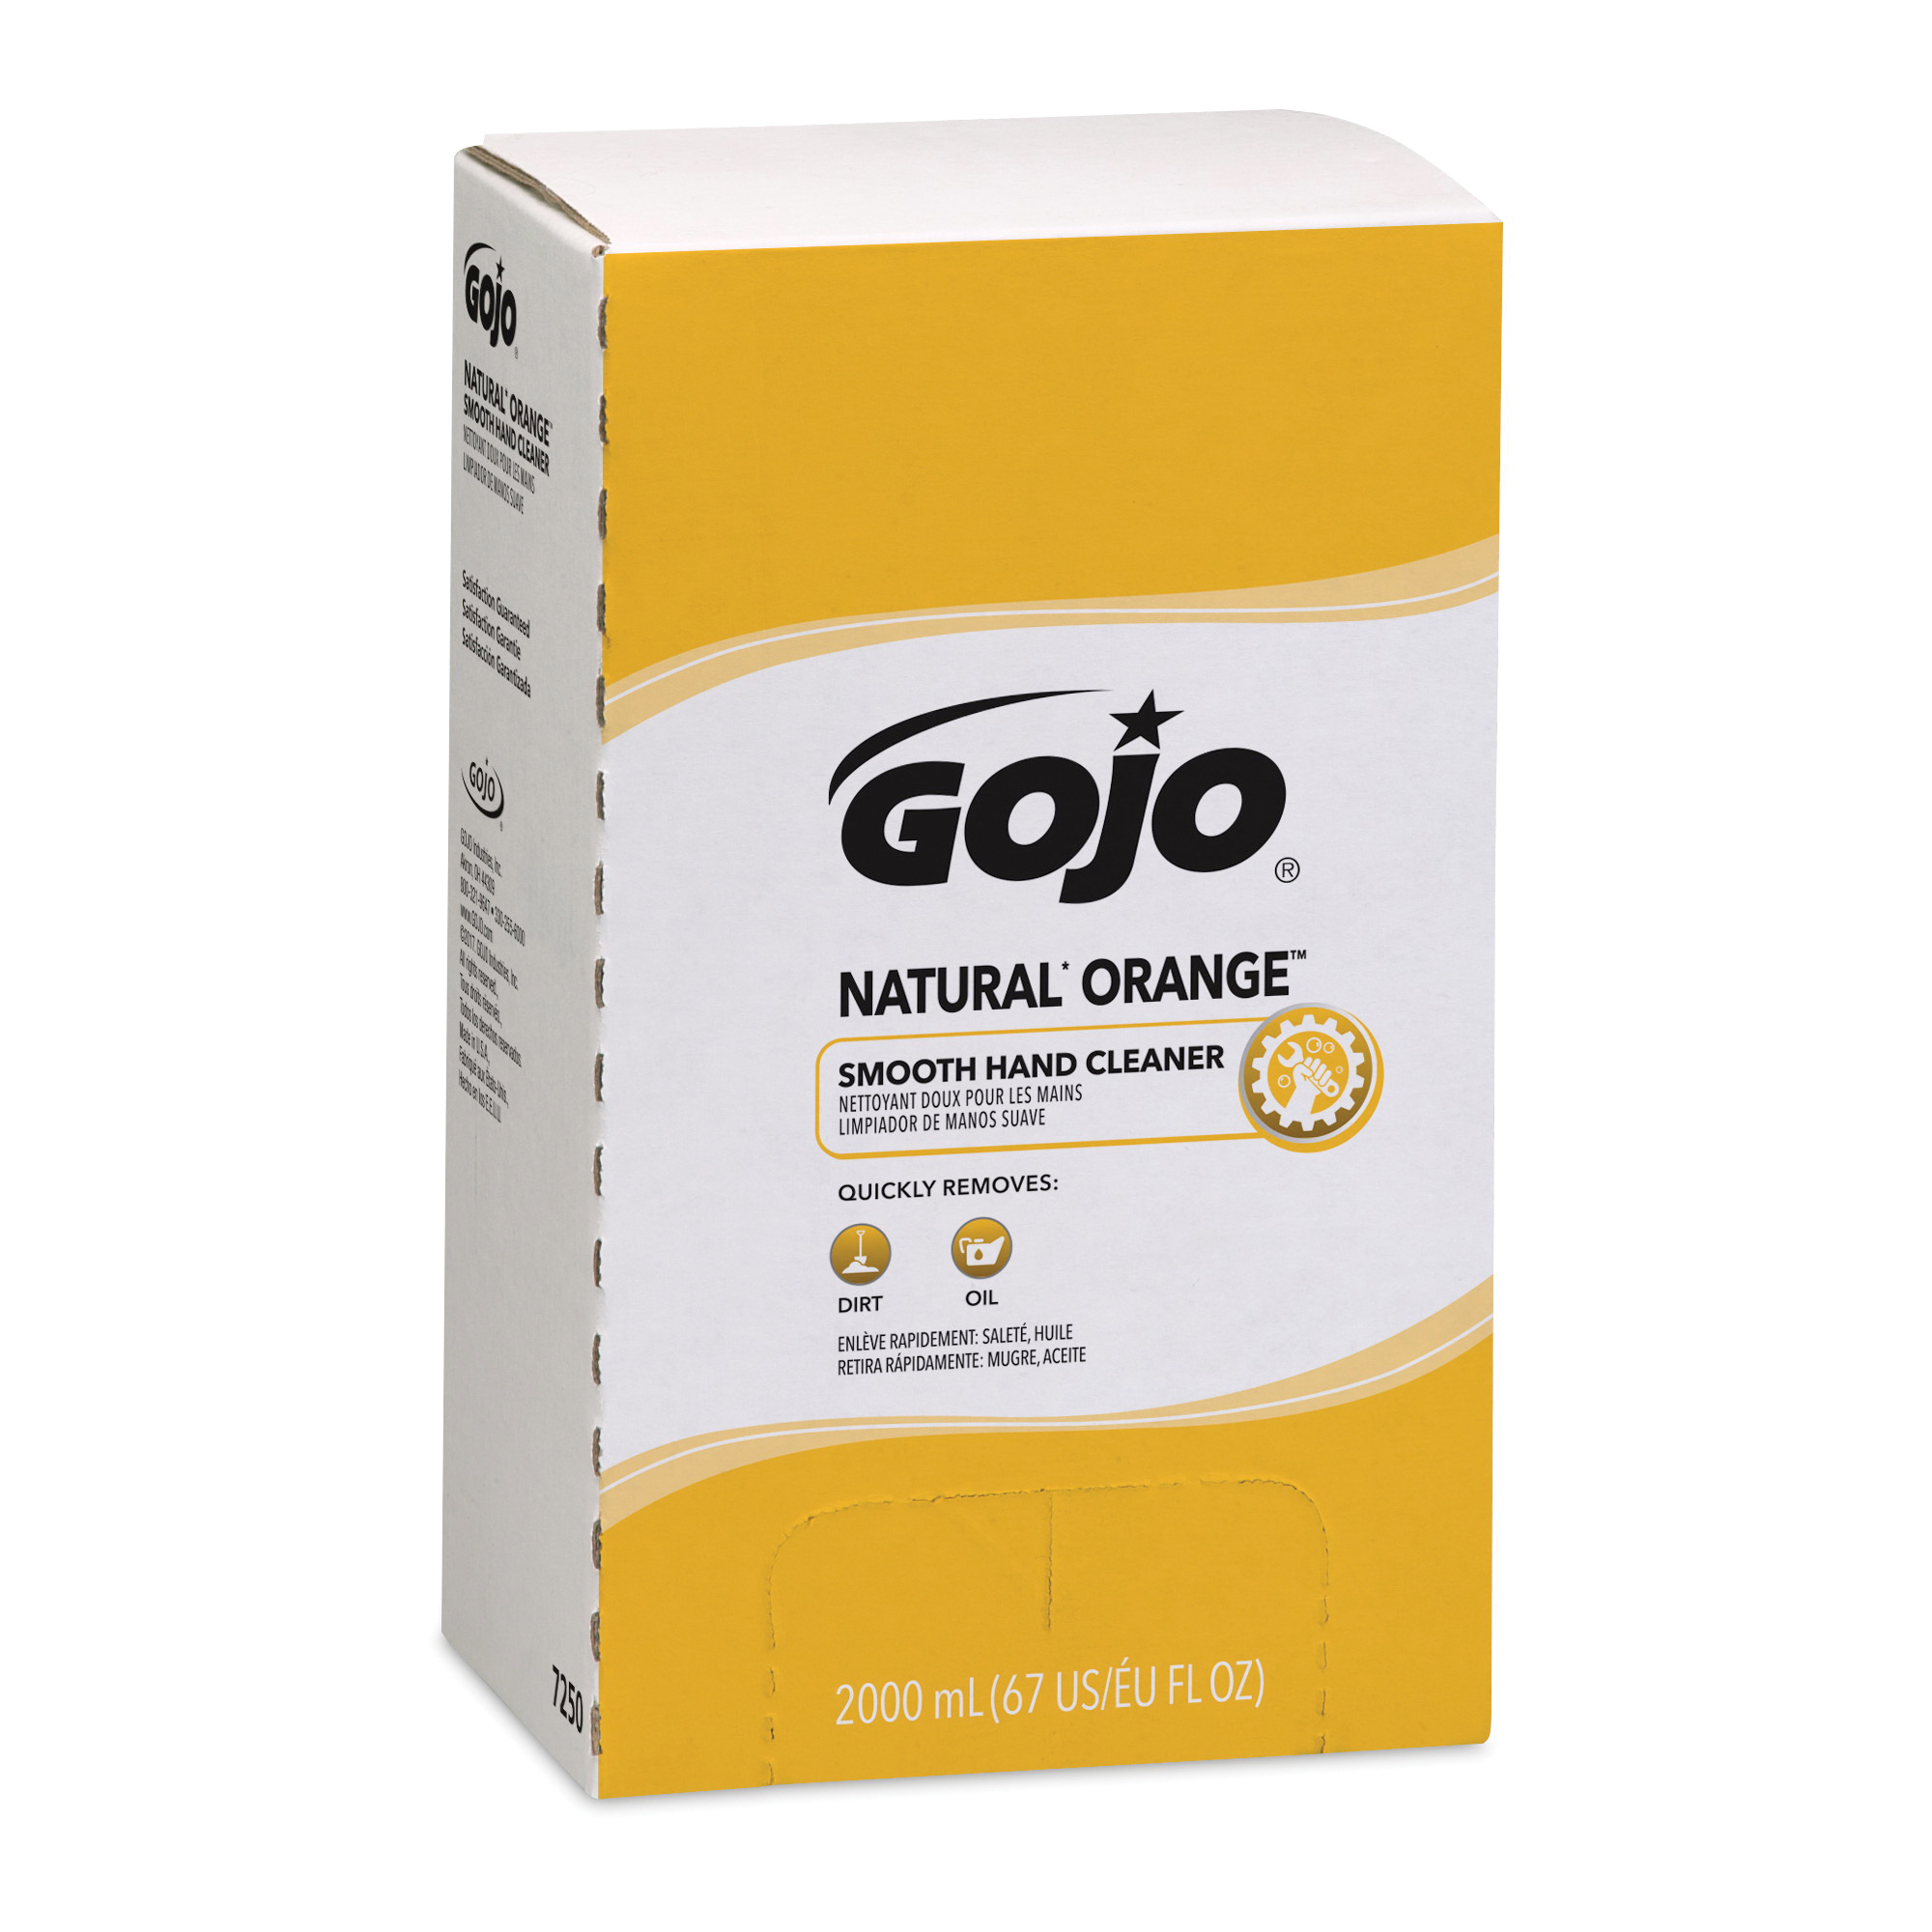 GOJO® 5665-02 TFX™ Hand Cleaner, 1200 mL Nominal, Dispenser Refill Package, Foam Form, Dye Free/Odorless Odor/Scent, Clear/Colorless to Pale Yellow